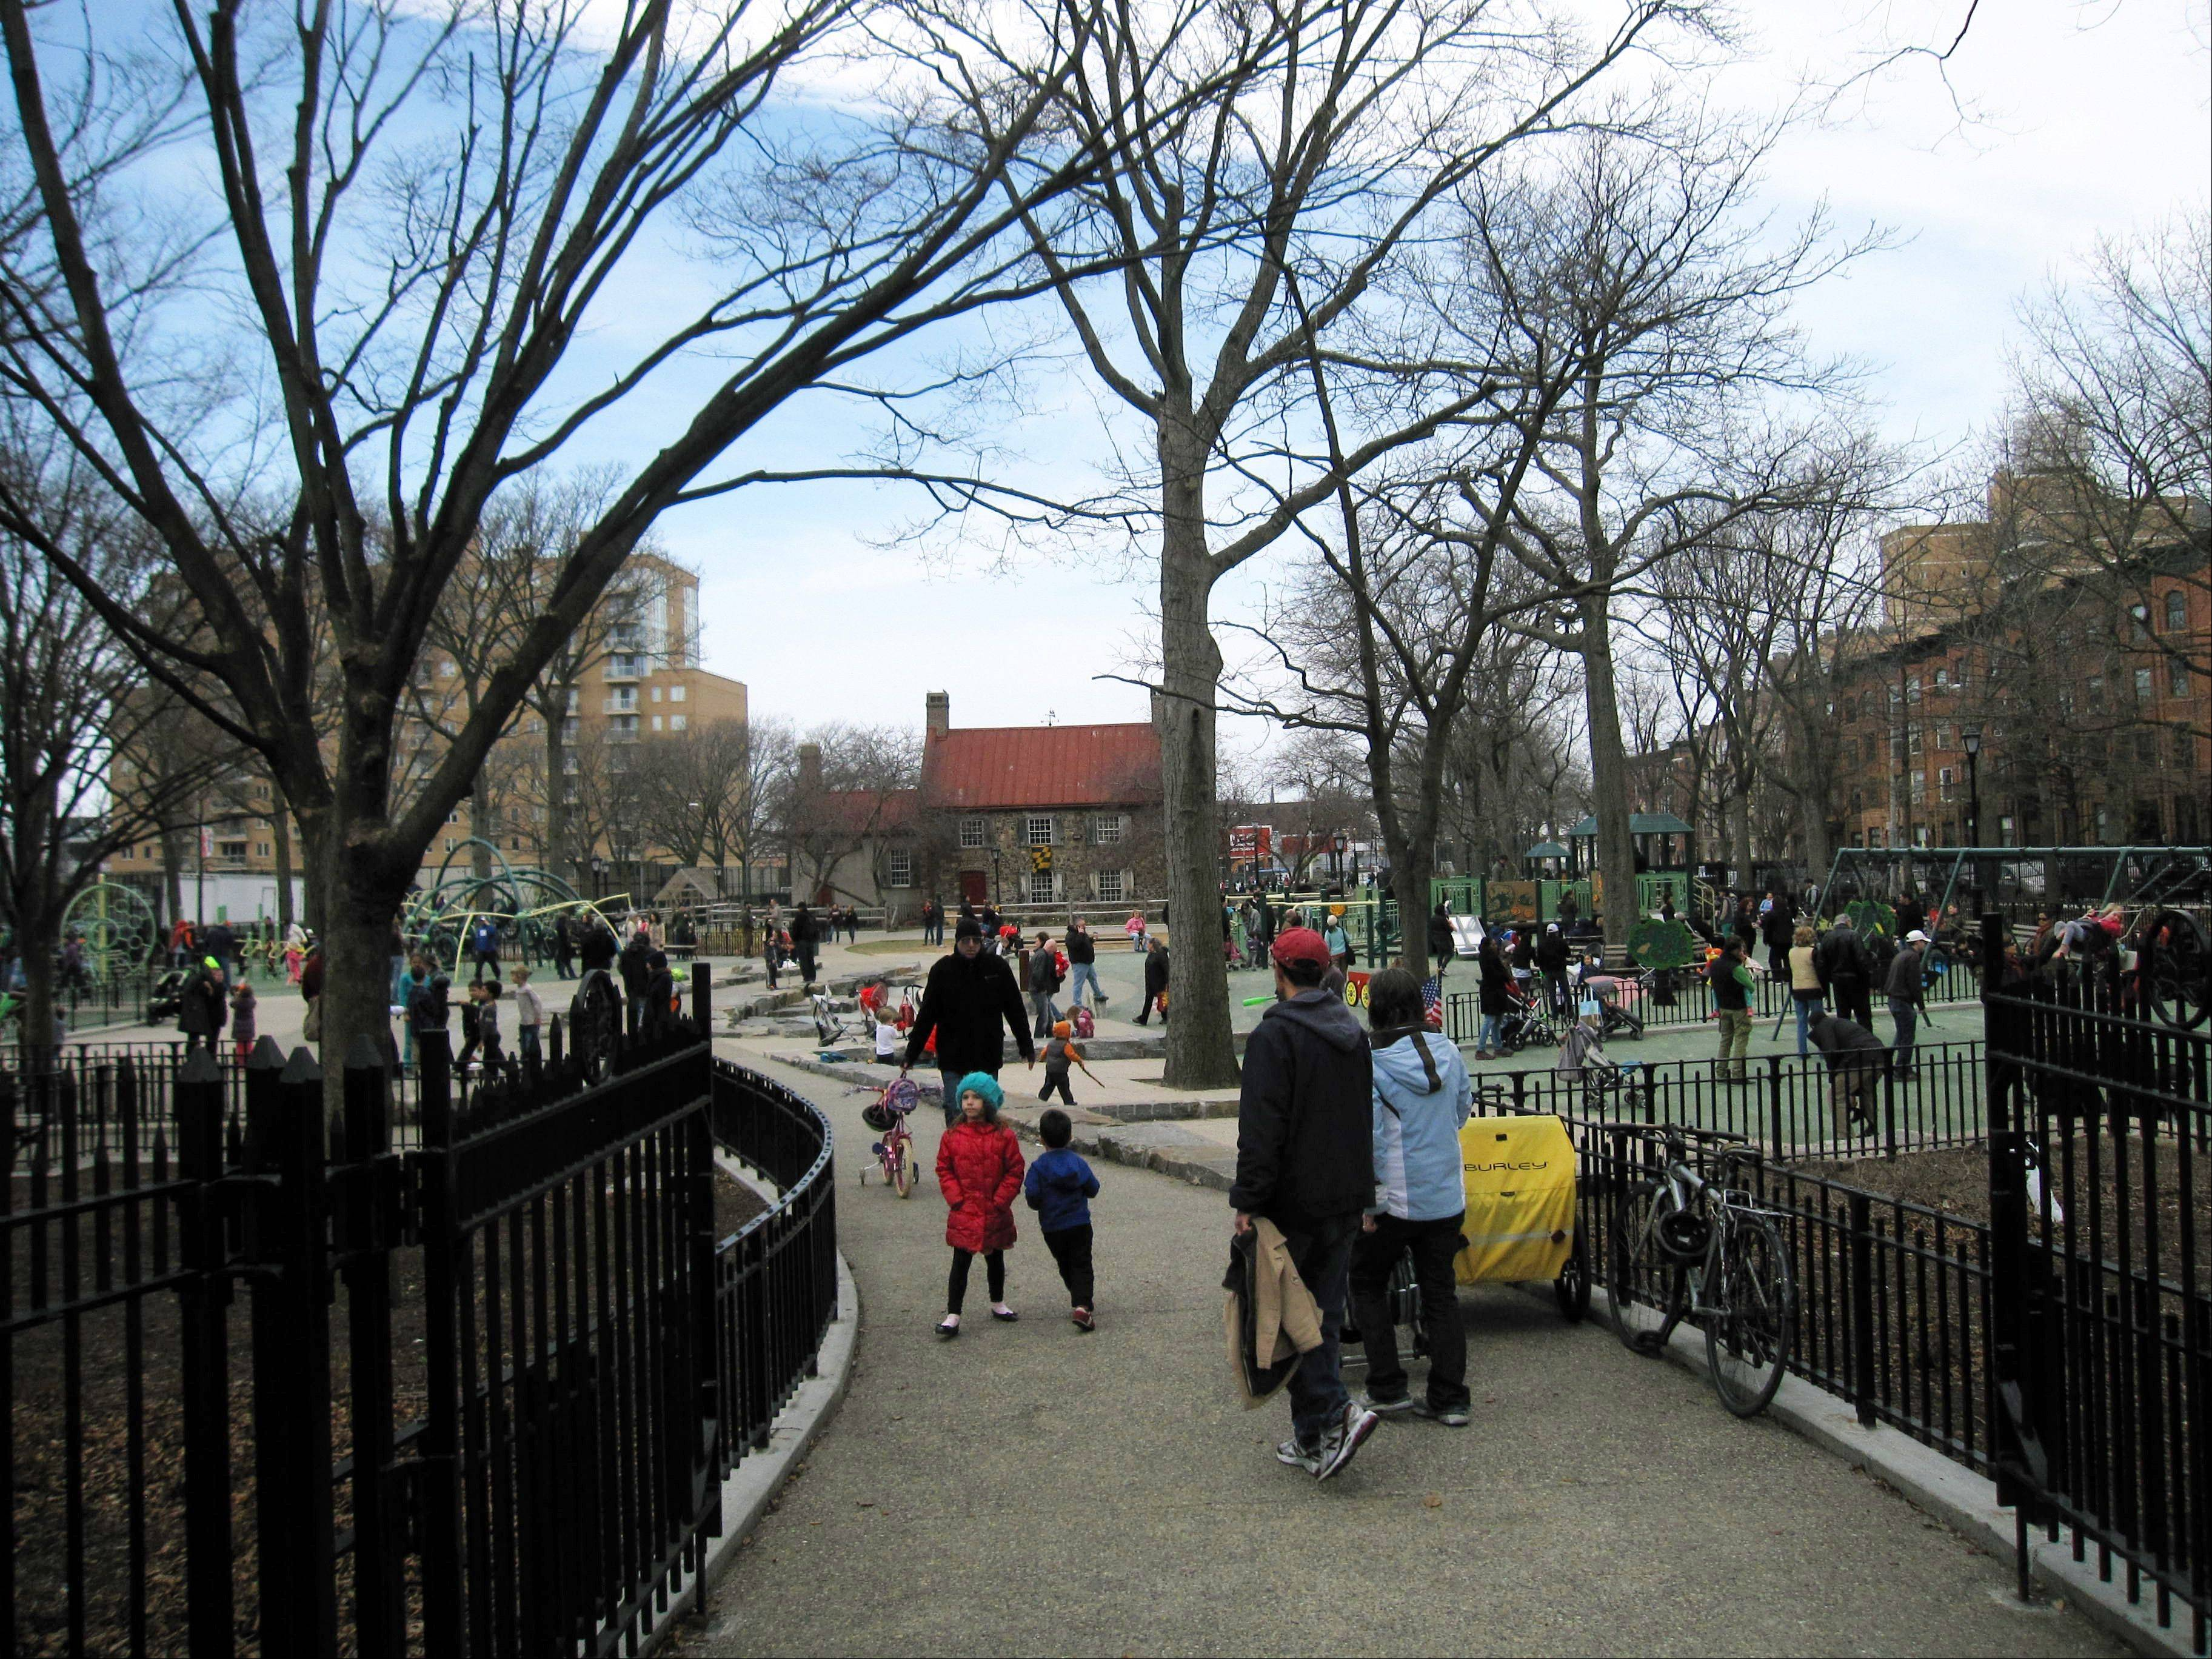 People in a playground at Washington Park in the Brooklyn borough of New York. A baseball park was located on the site beginning in the 1880s, and the team, later known as the Brooklyn Dodgers, used the Old Stone House, background center, as a clubhouse.